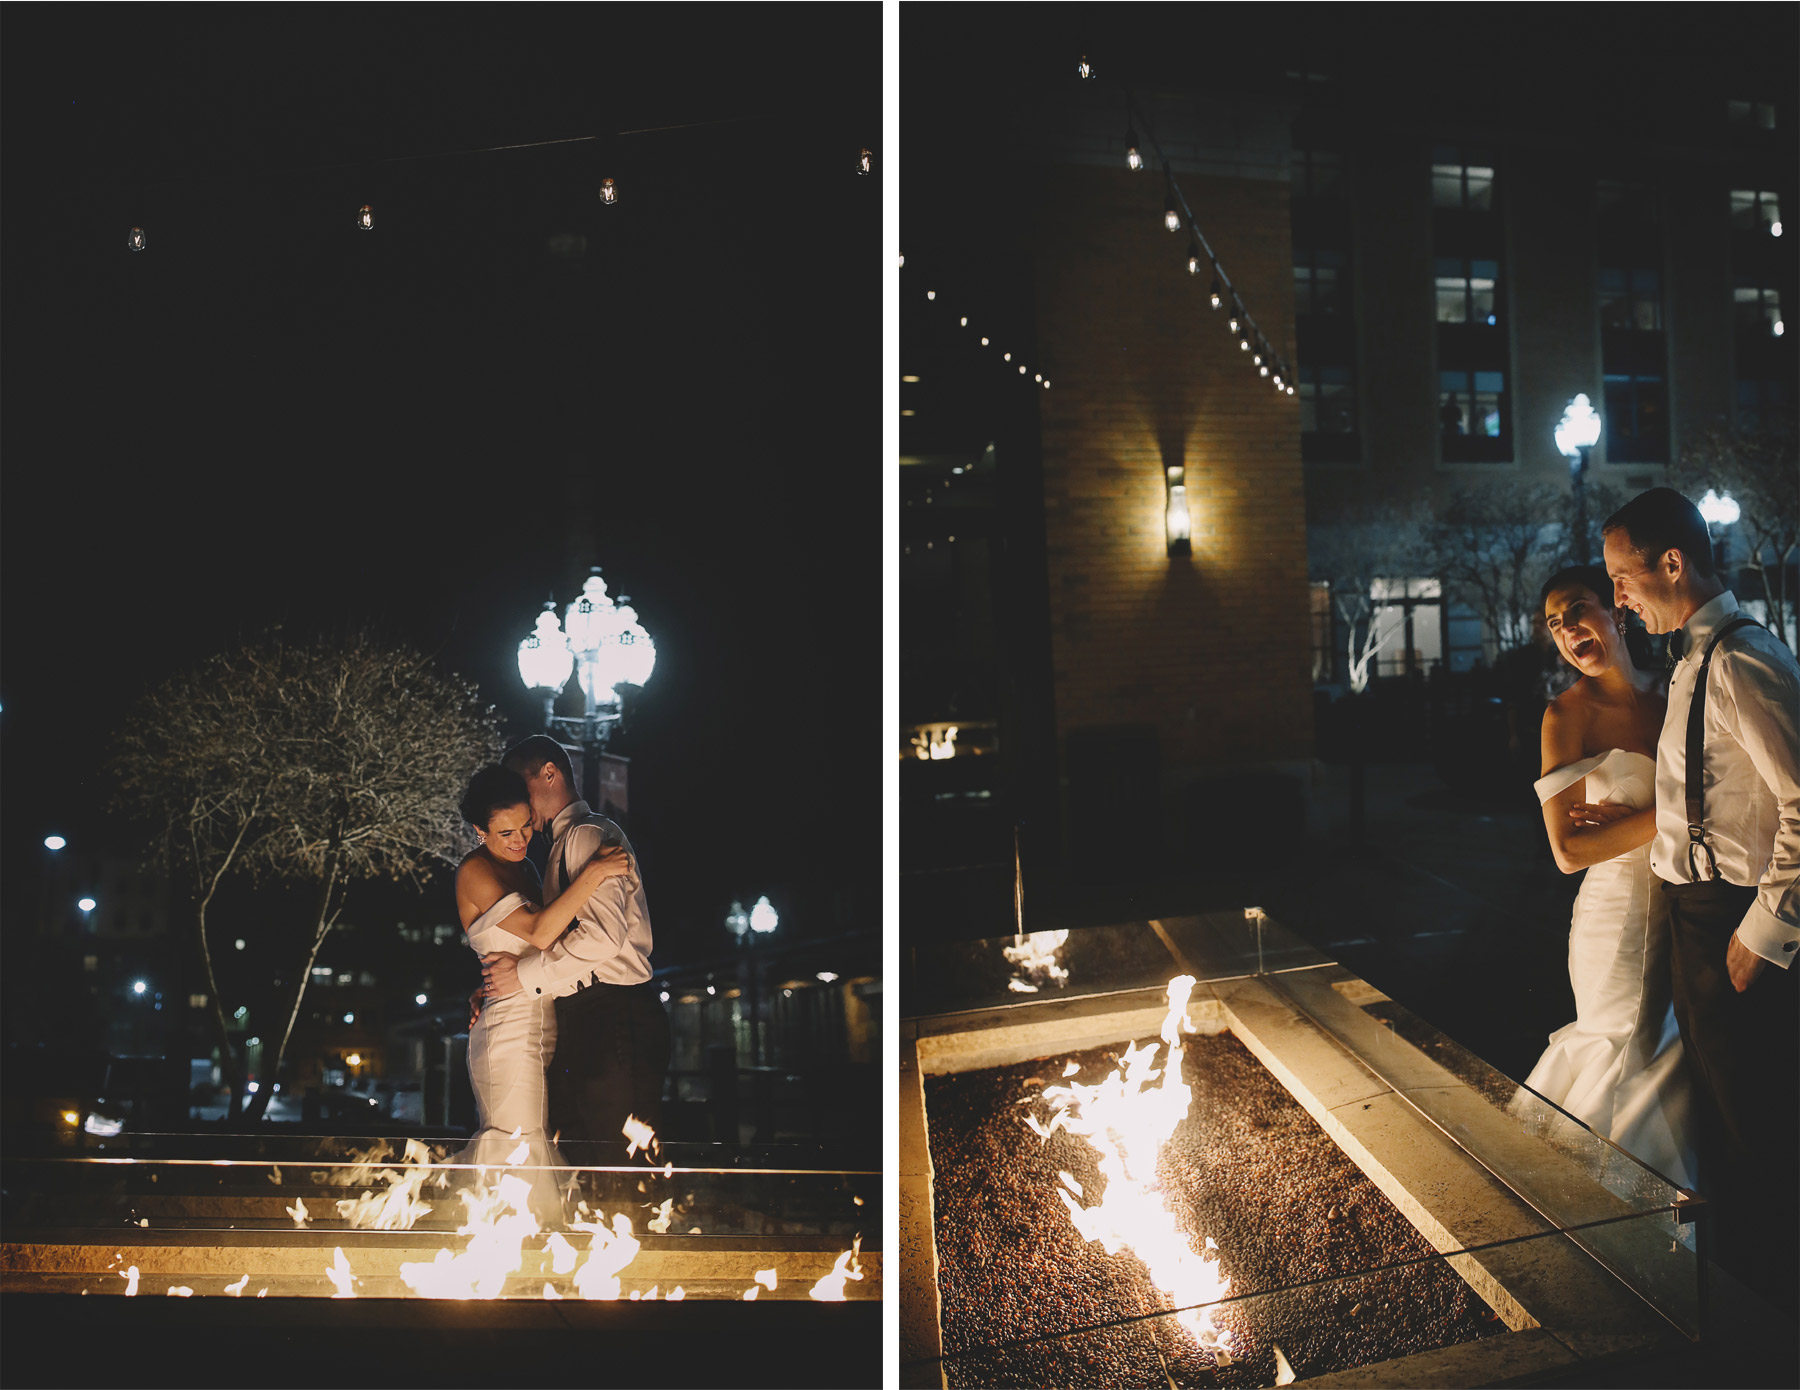 20-Minneapolis-Minnesota-Wedding-Photographer-Andrew-Vick-Photography-The-Depot-Winter-Outdoor-Firepit-Bride-and-Groom-Allison-and-Steve.jpg